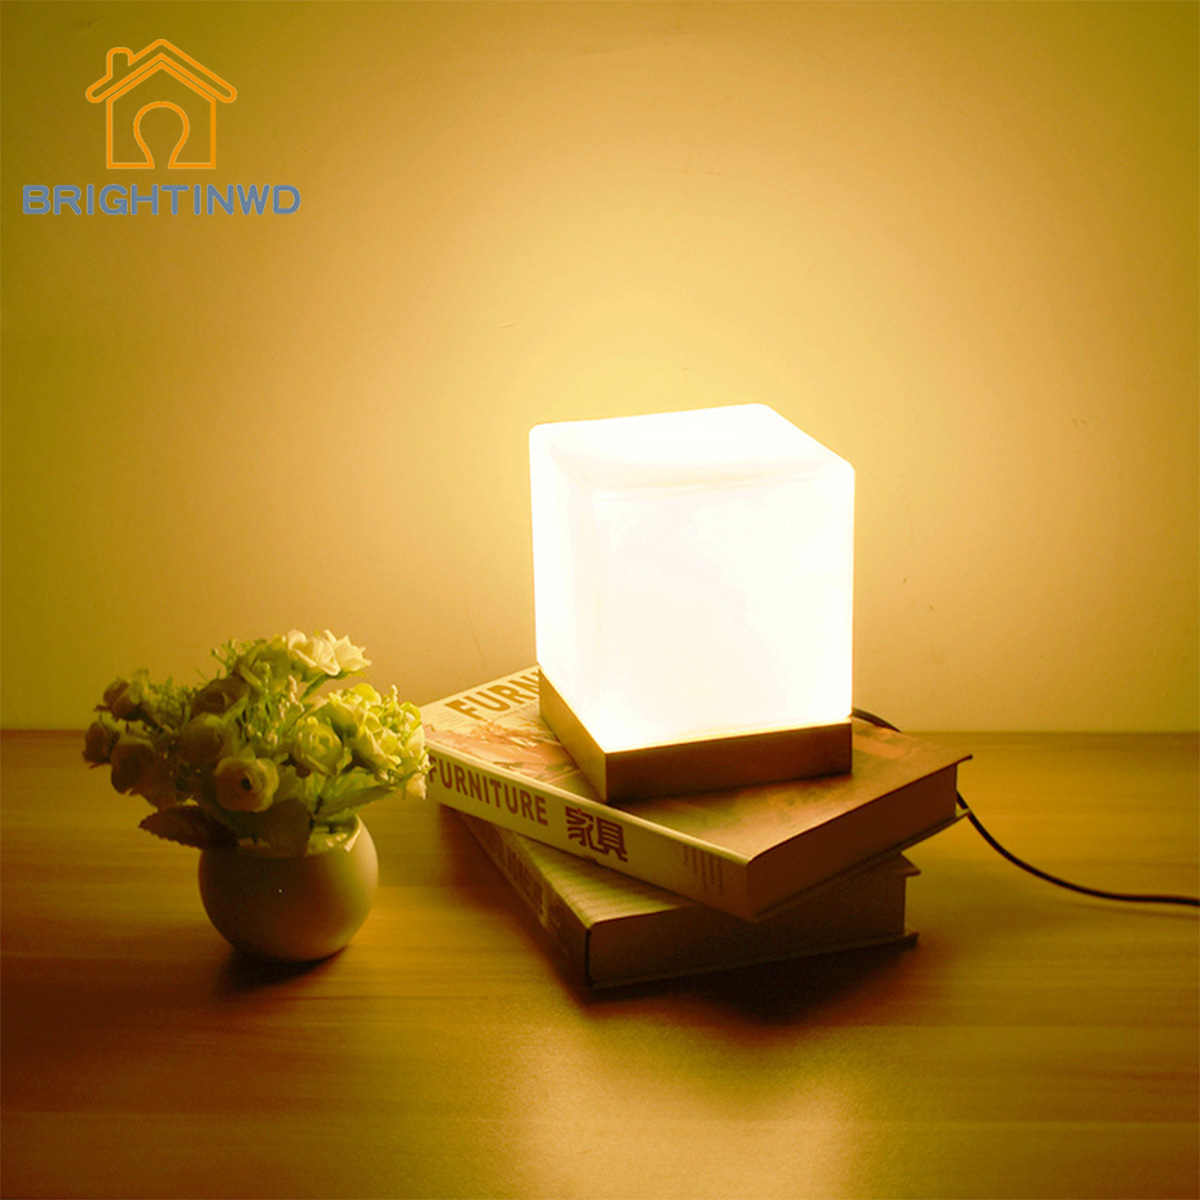 BRIGHTINWD Small Table Lamp Simple Glass Wood Warm Light Night Light Desk Bedroom Decoration Bedside Lamp